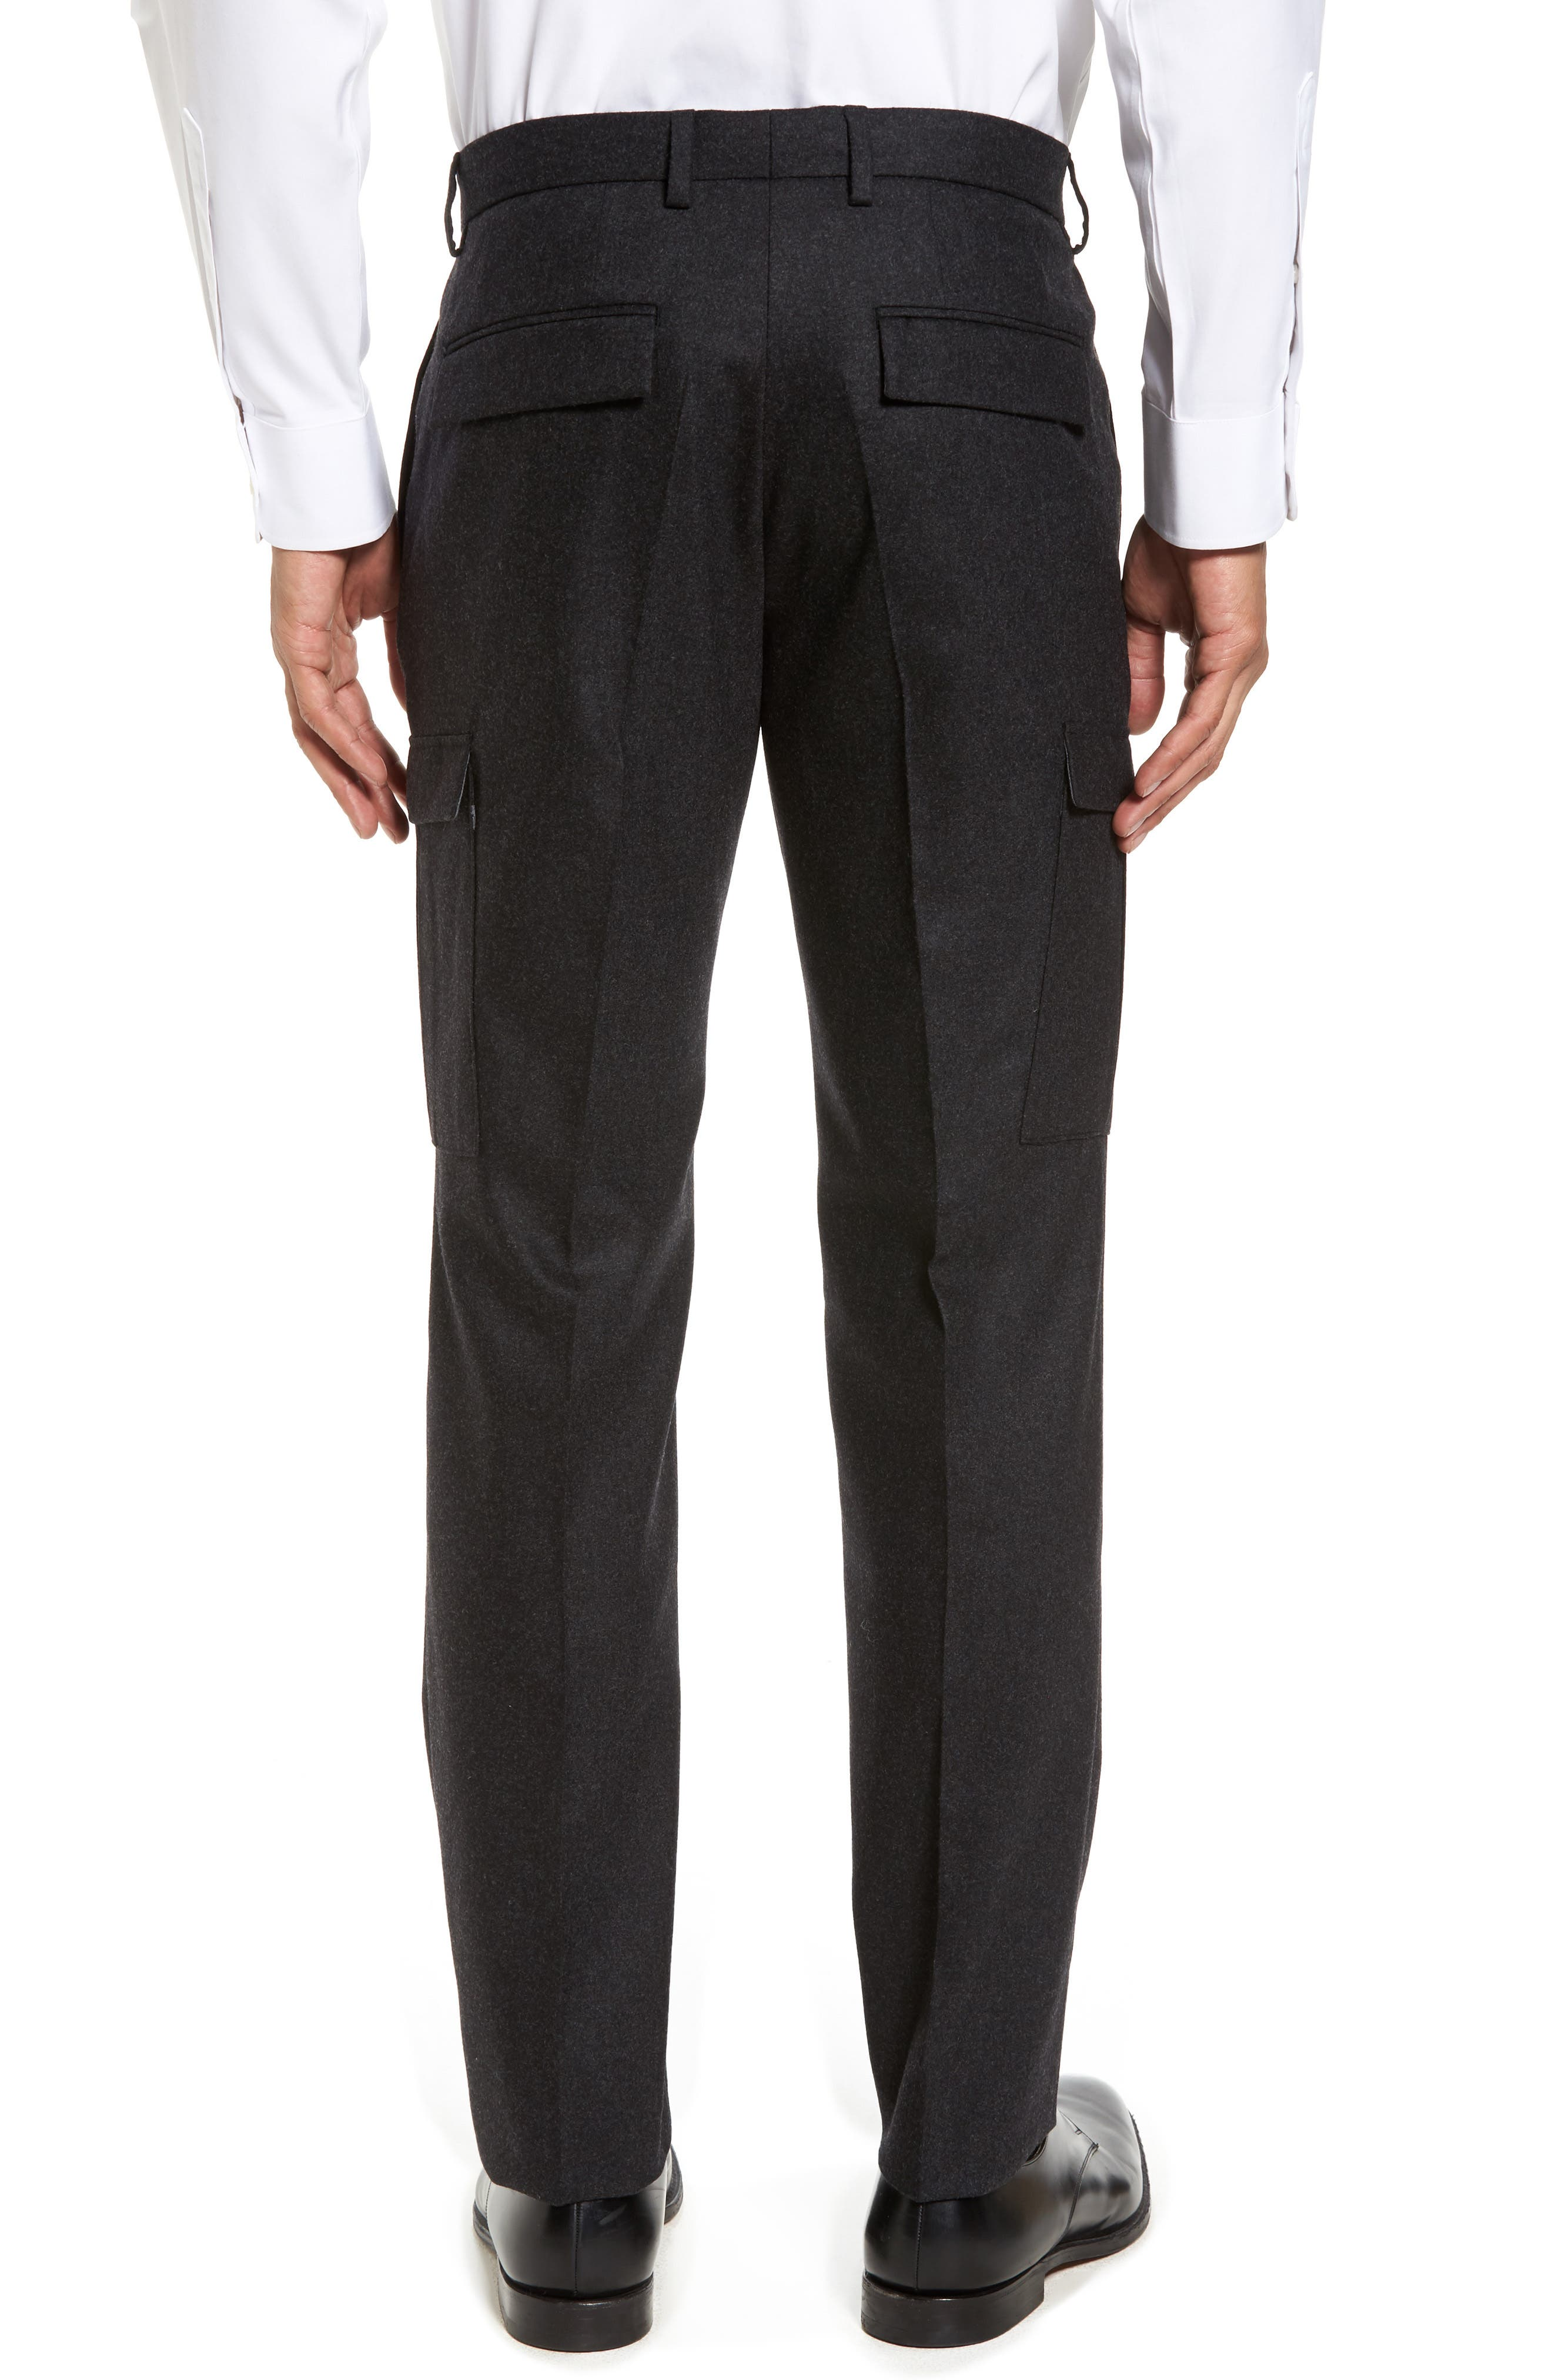 Balour Flat Front Stretch Solid Wool & Cashmere Cargo Trousers,                             Alternate thumbnail 2, color,                             Dark Grey